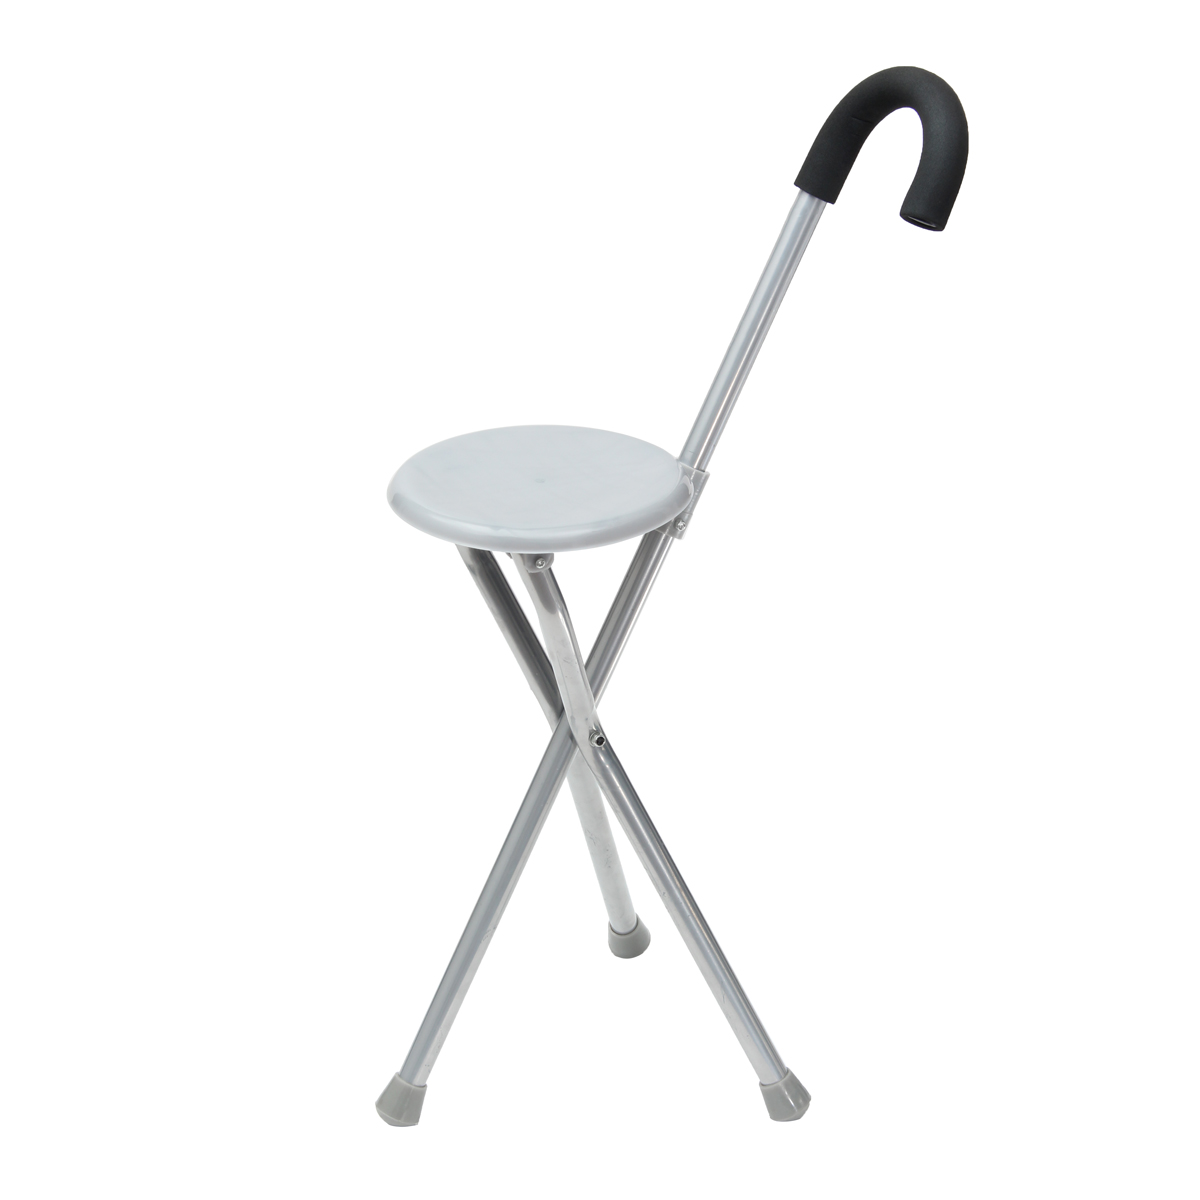 cane chairs new zealand casters for office on hardwood floor ipree outdoor travel folding stool chair portable tripod